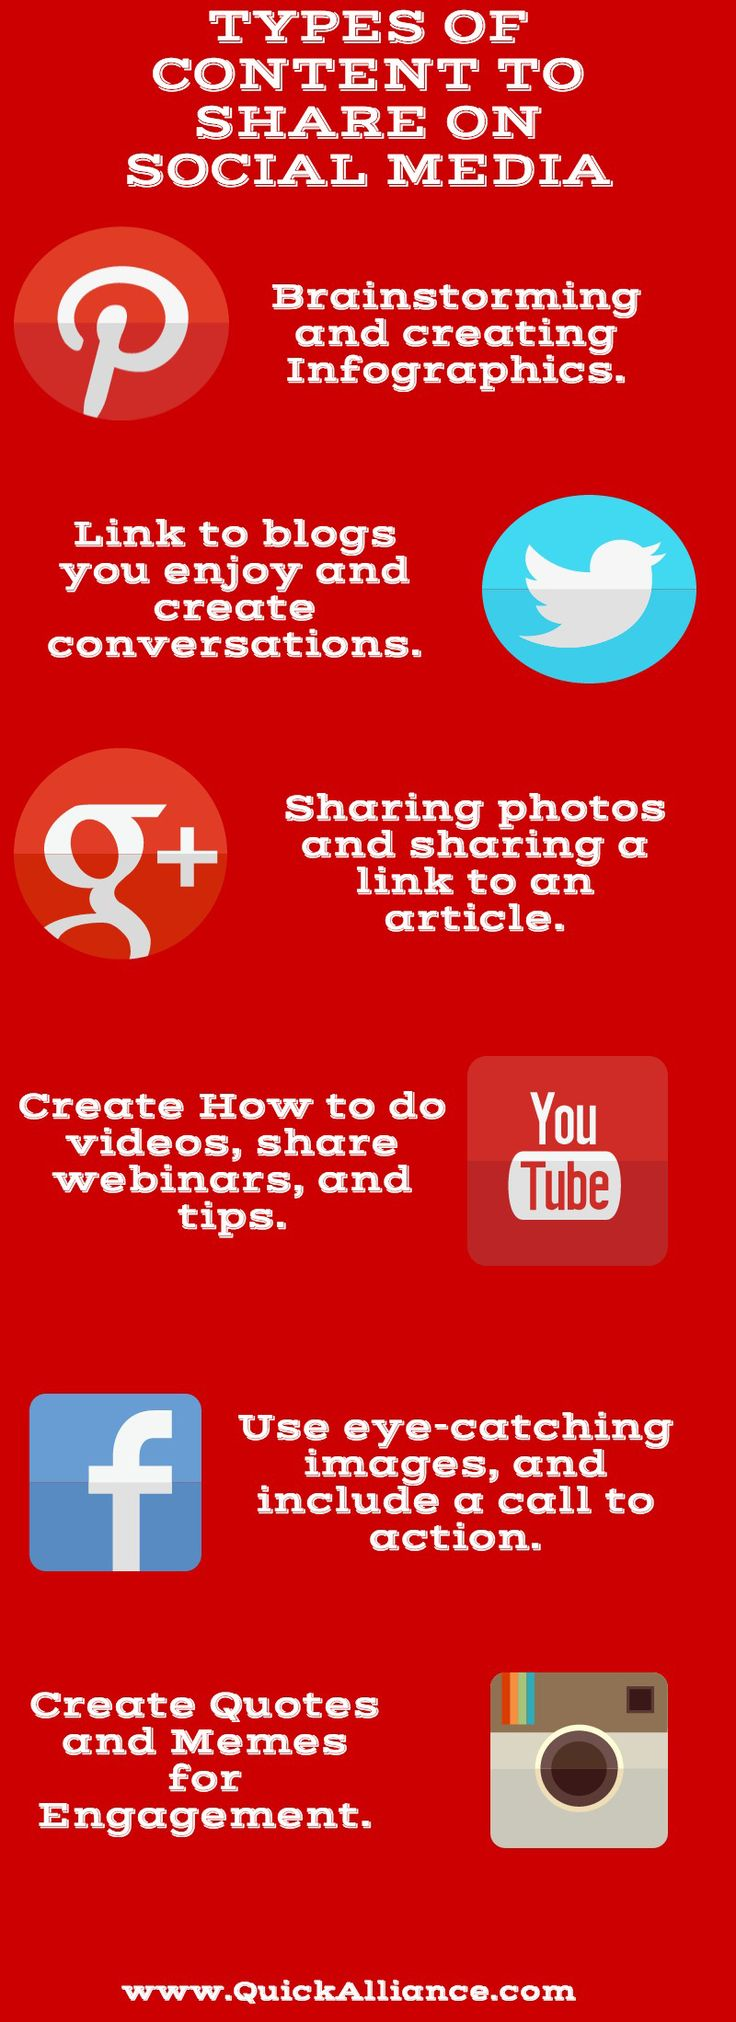 Types of Content to share on Social Media http://www.quickalliance.com/types-of-content-to-share-on-social-media/